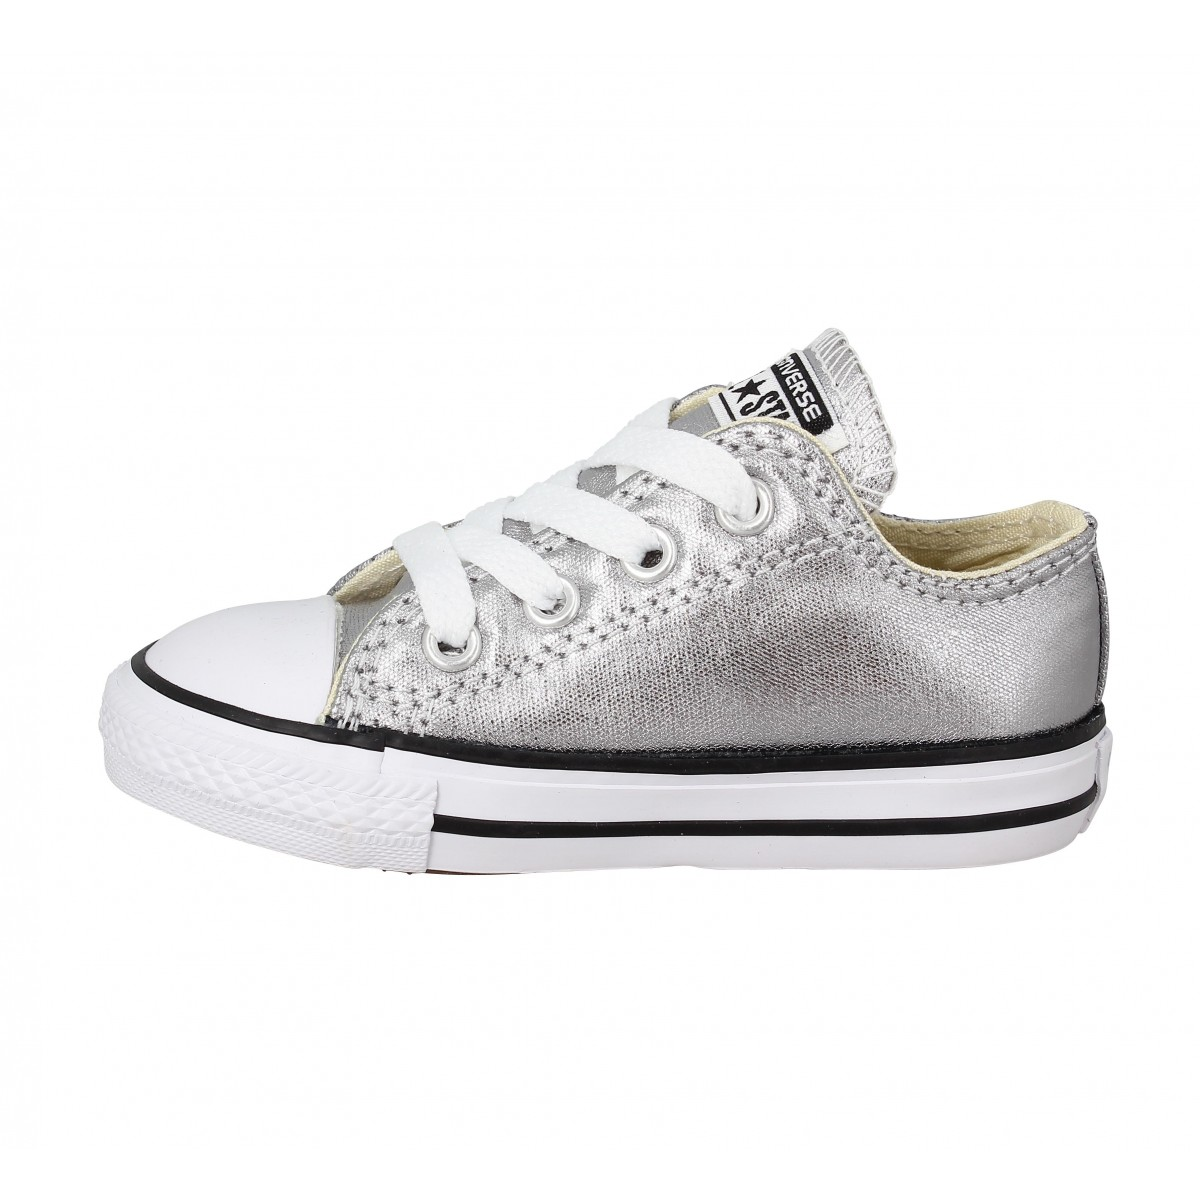 CONVERSE Chuck Taylor All Star toile Enfant Argent